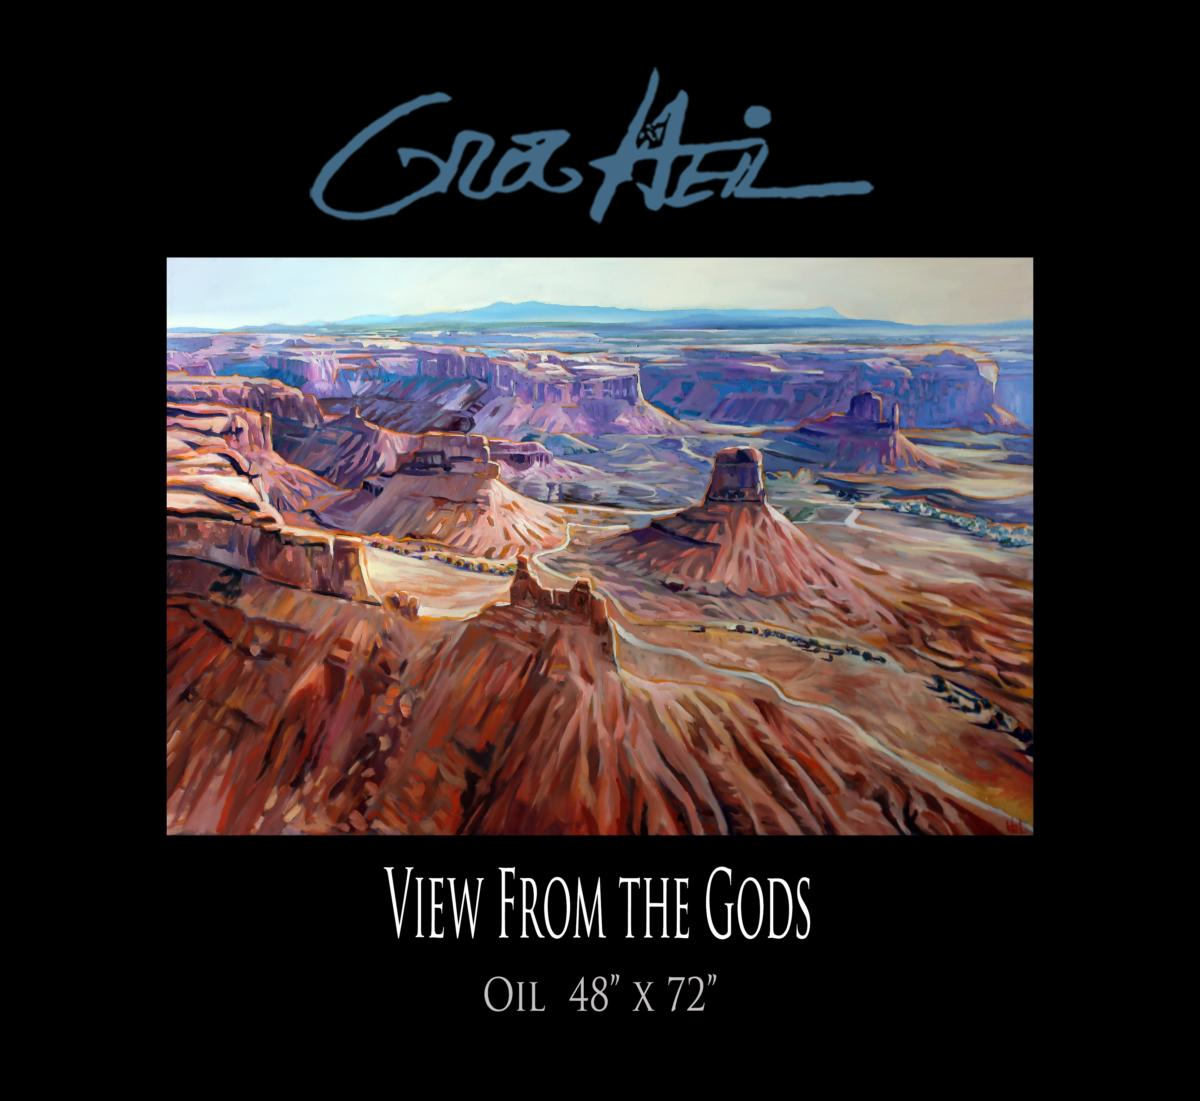 View From the Gods Promo 48x72